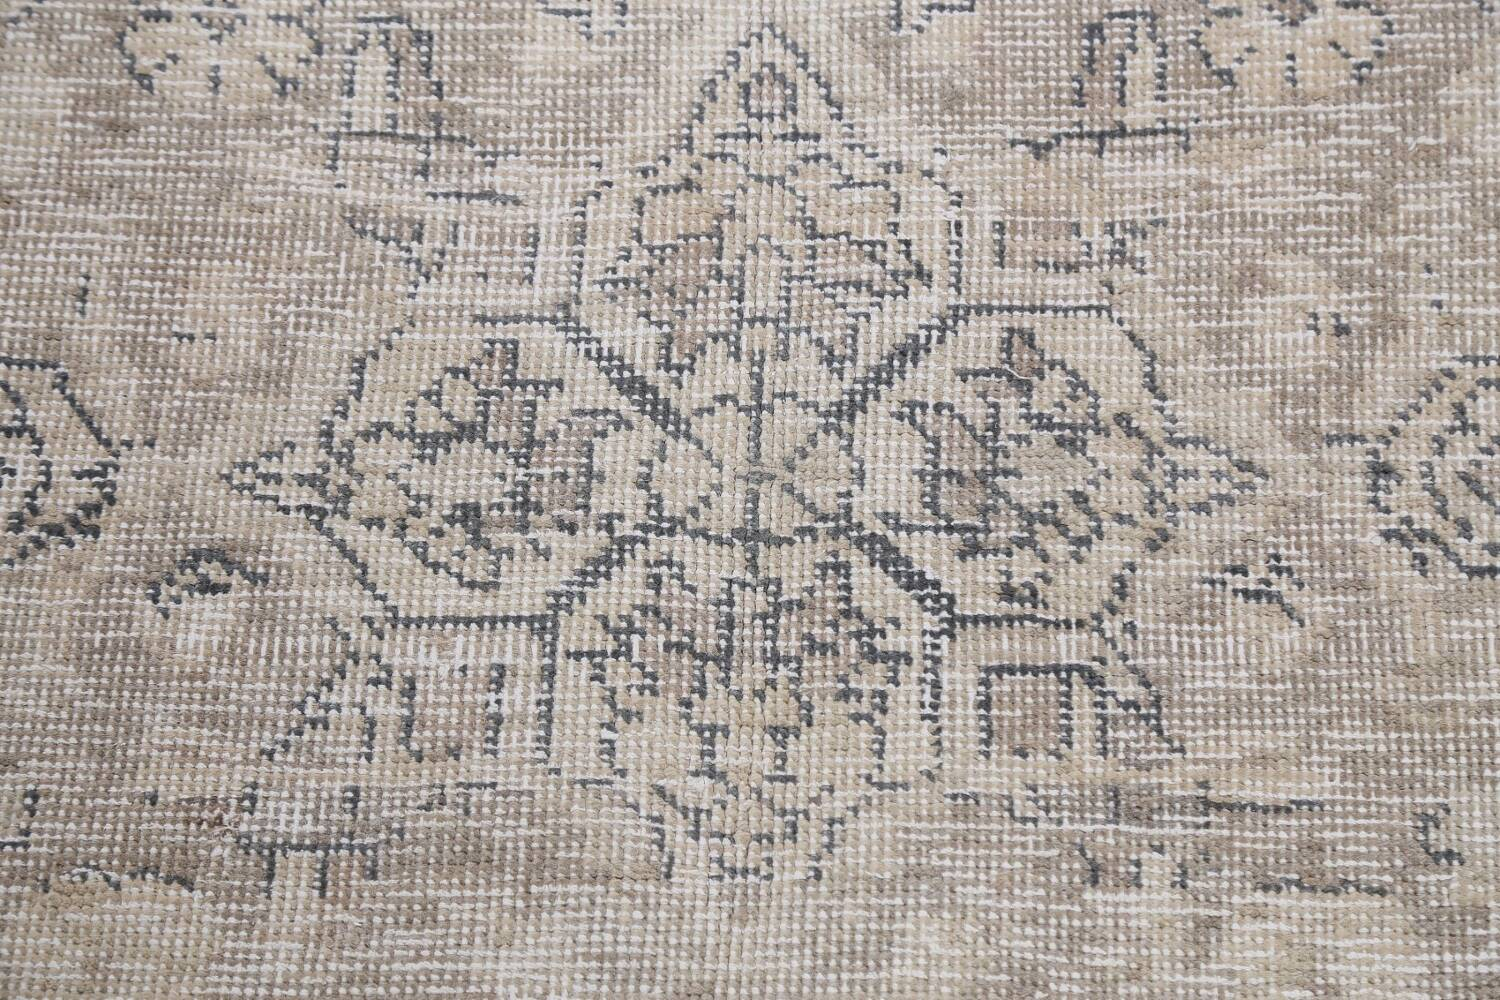 Muted Distressed Floral Tabriz Persian Area Rug 6x8 image 10